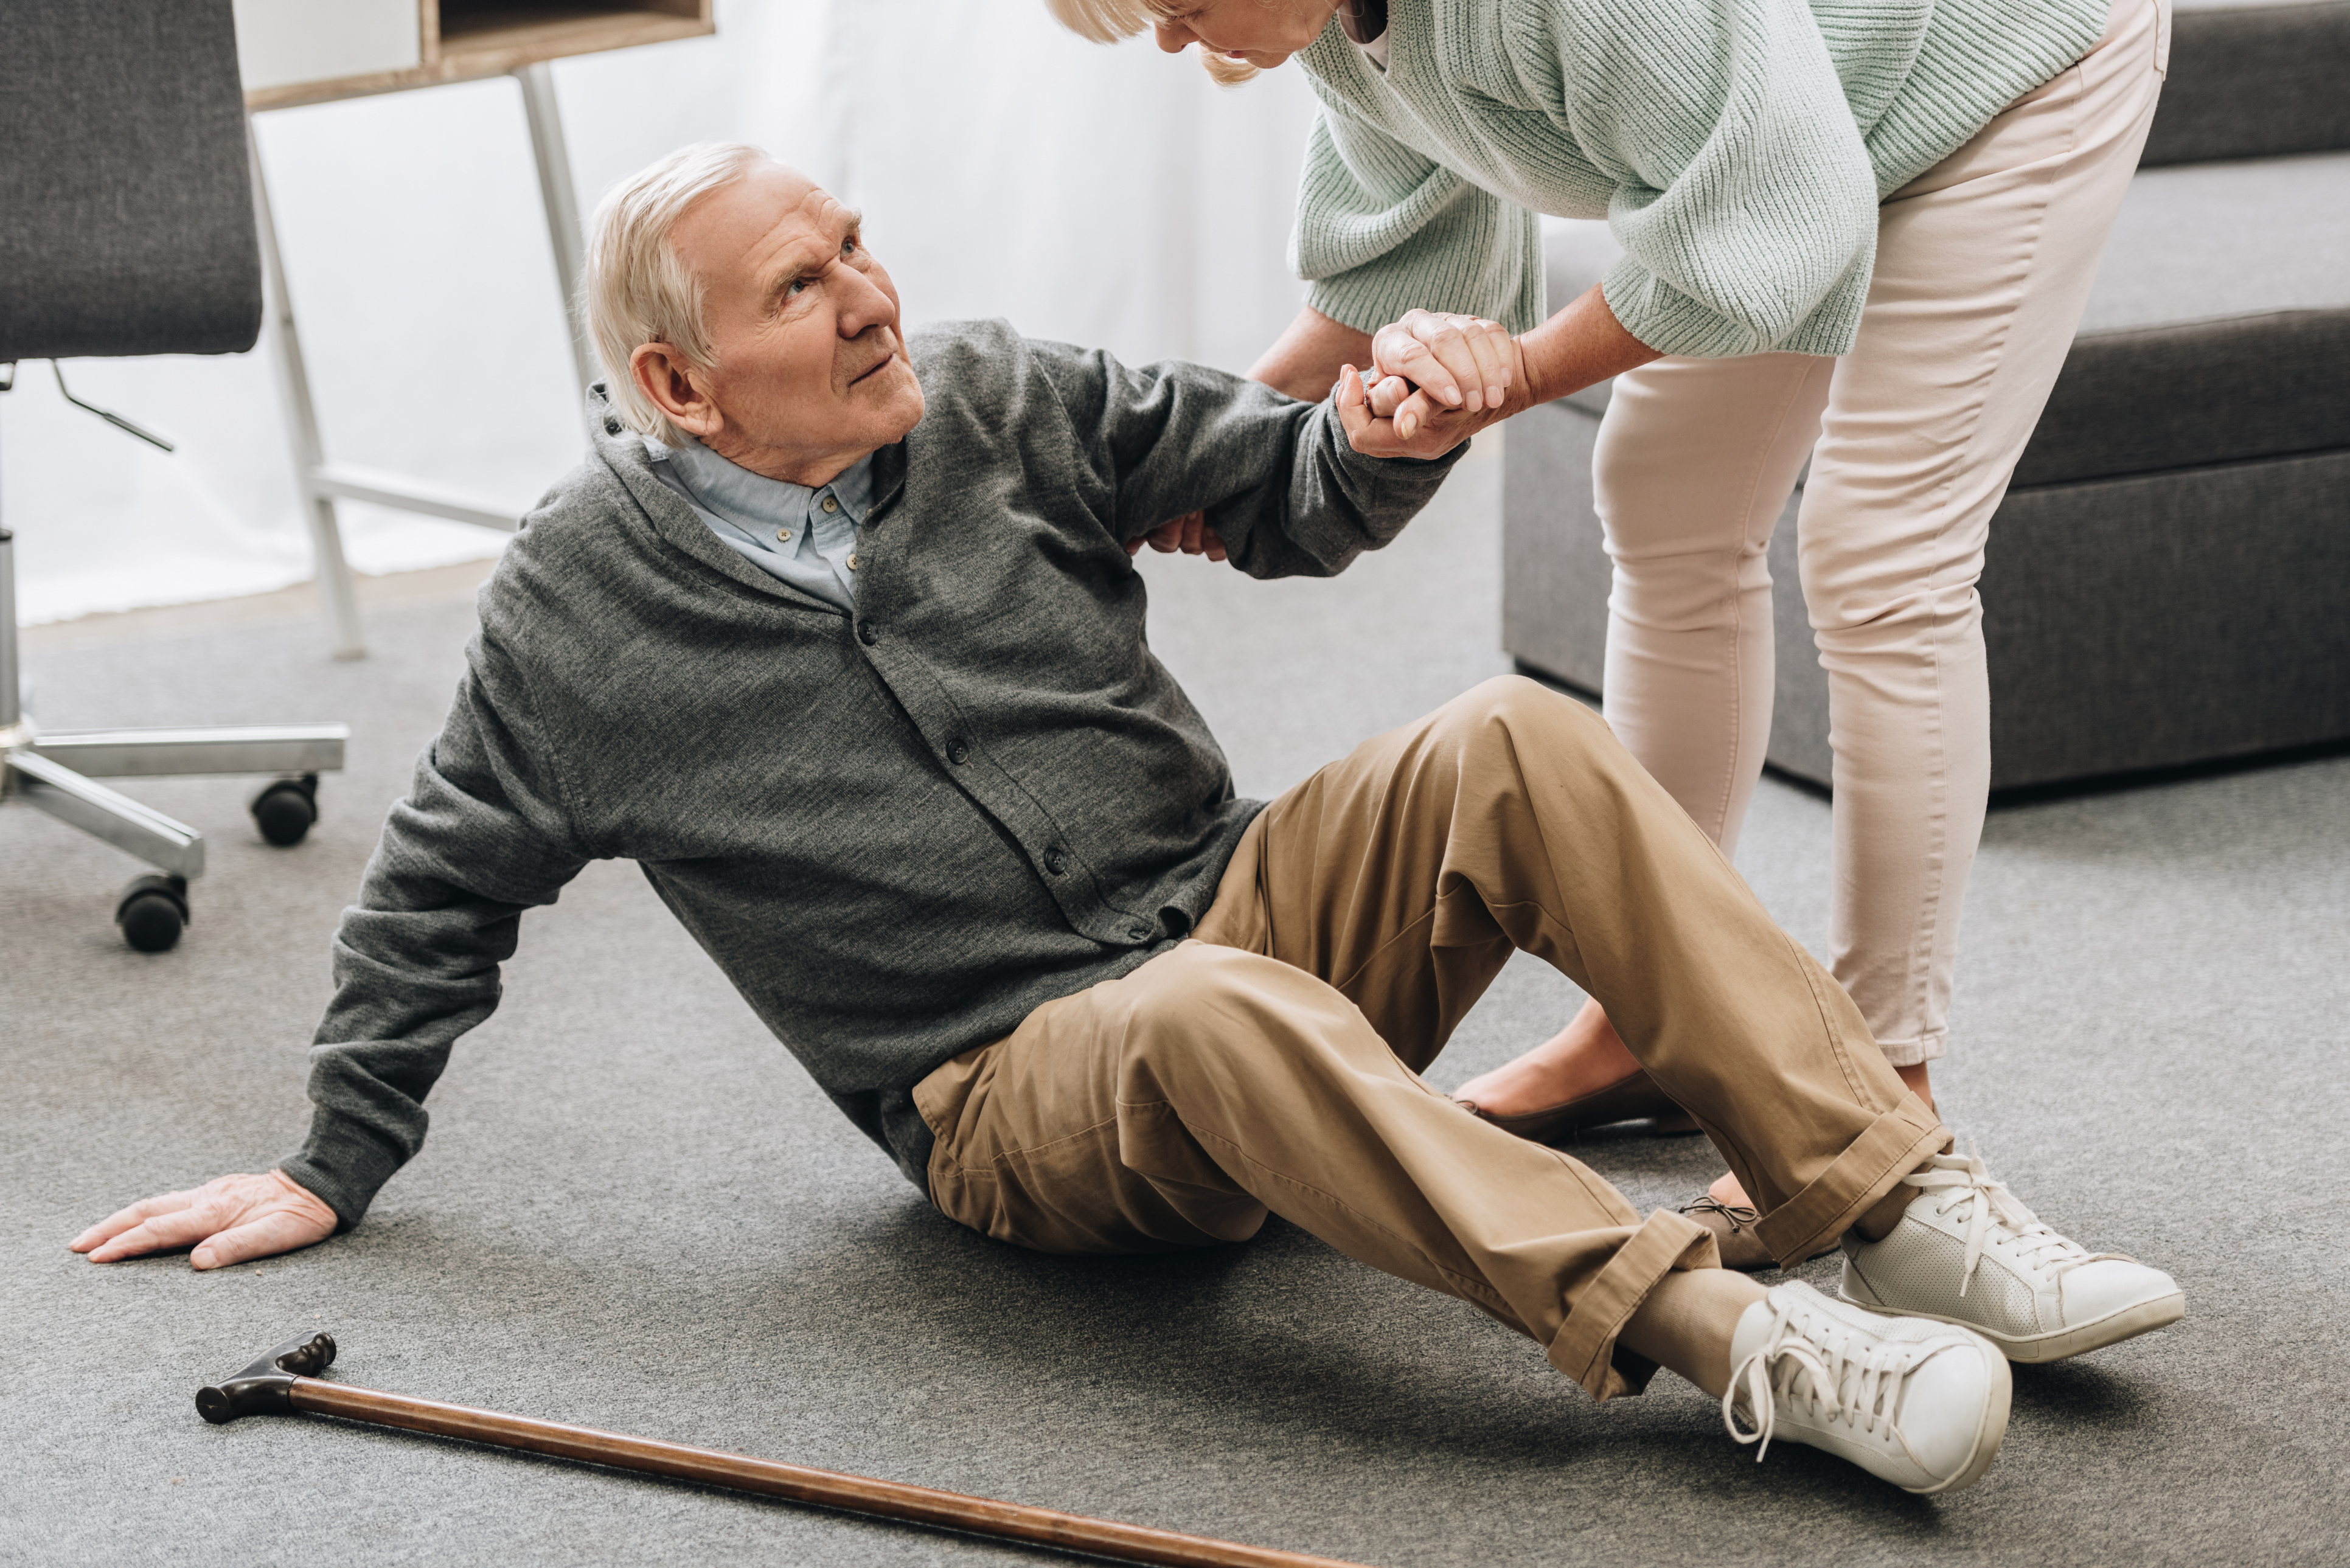 One in four Americans aged 65 and older fall each year. (iStock photo)